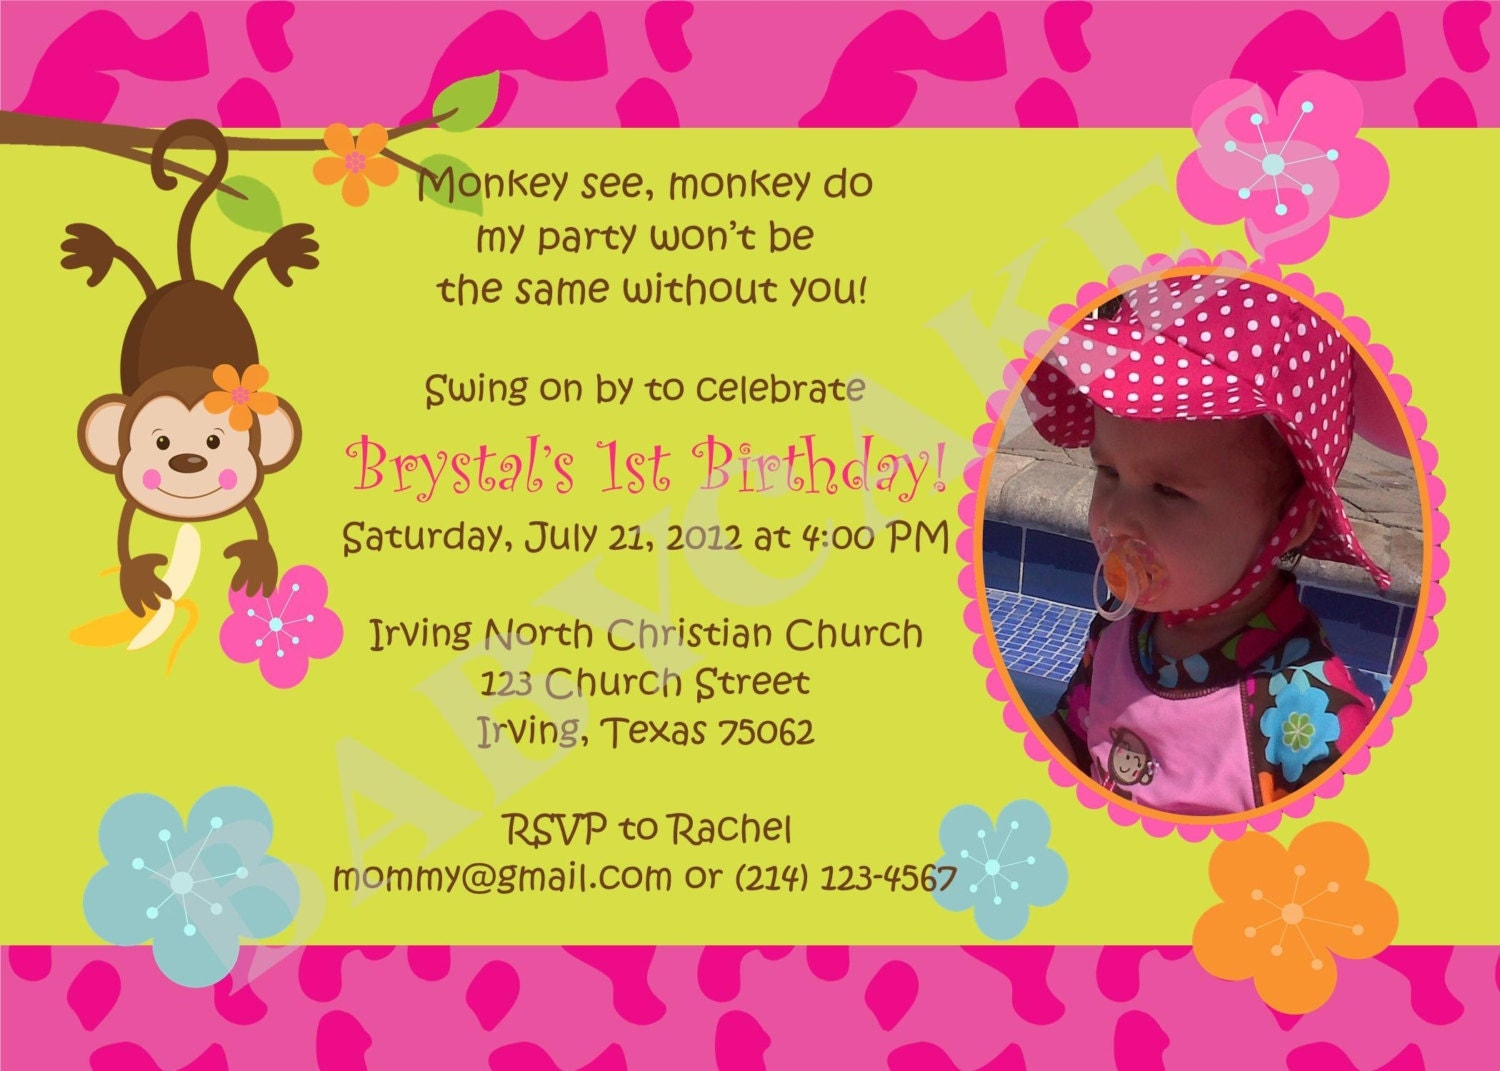 Monkey love party invitations - photo#1